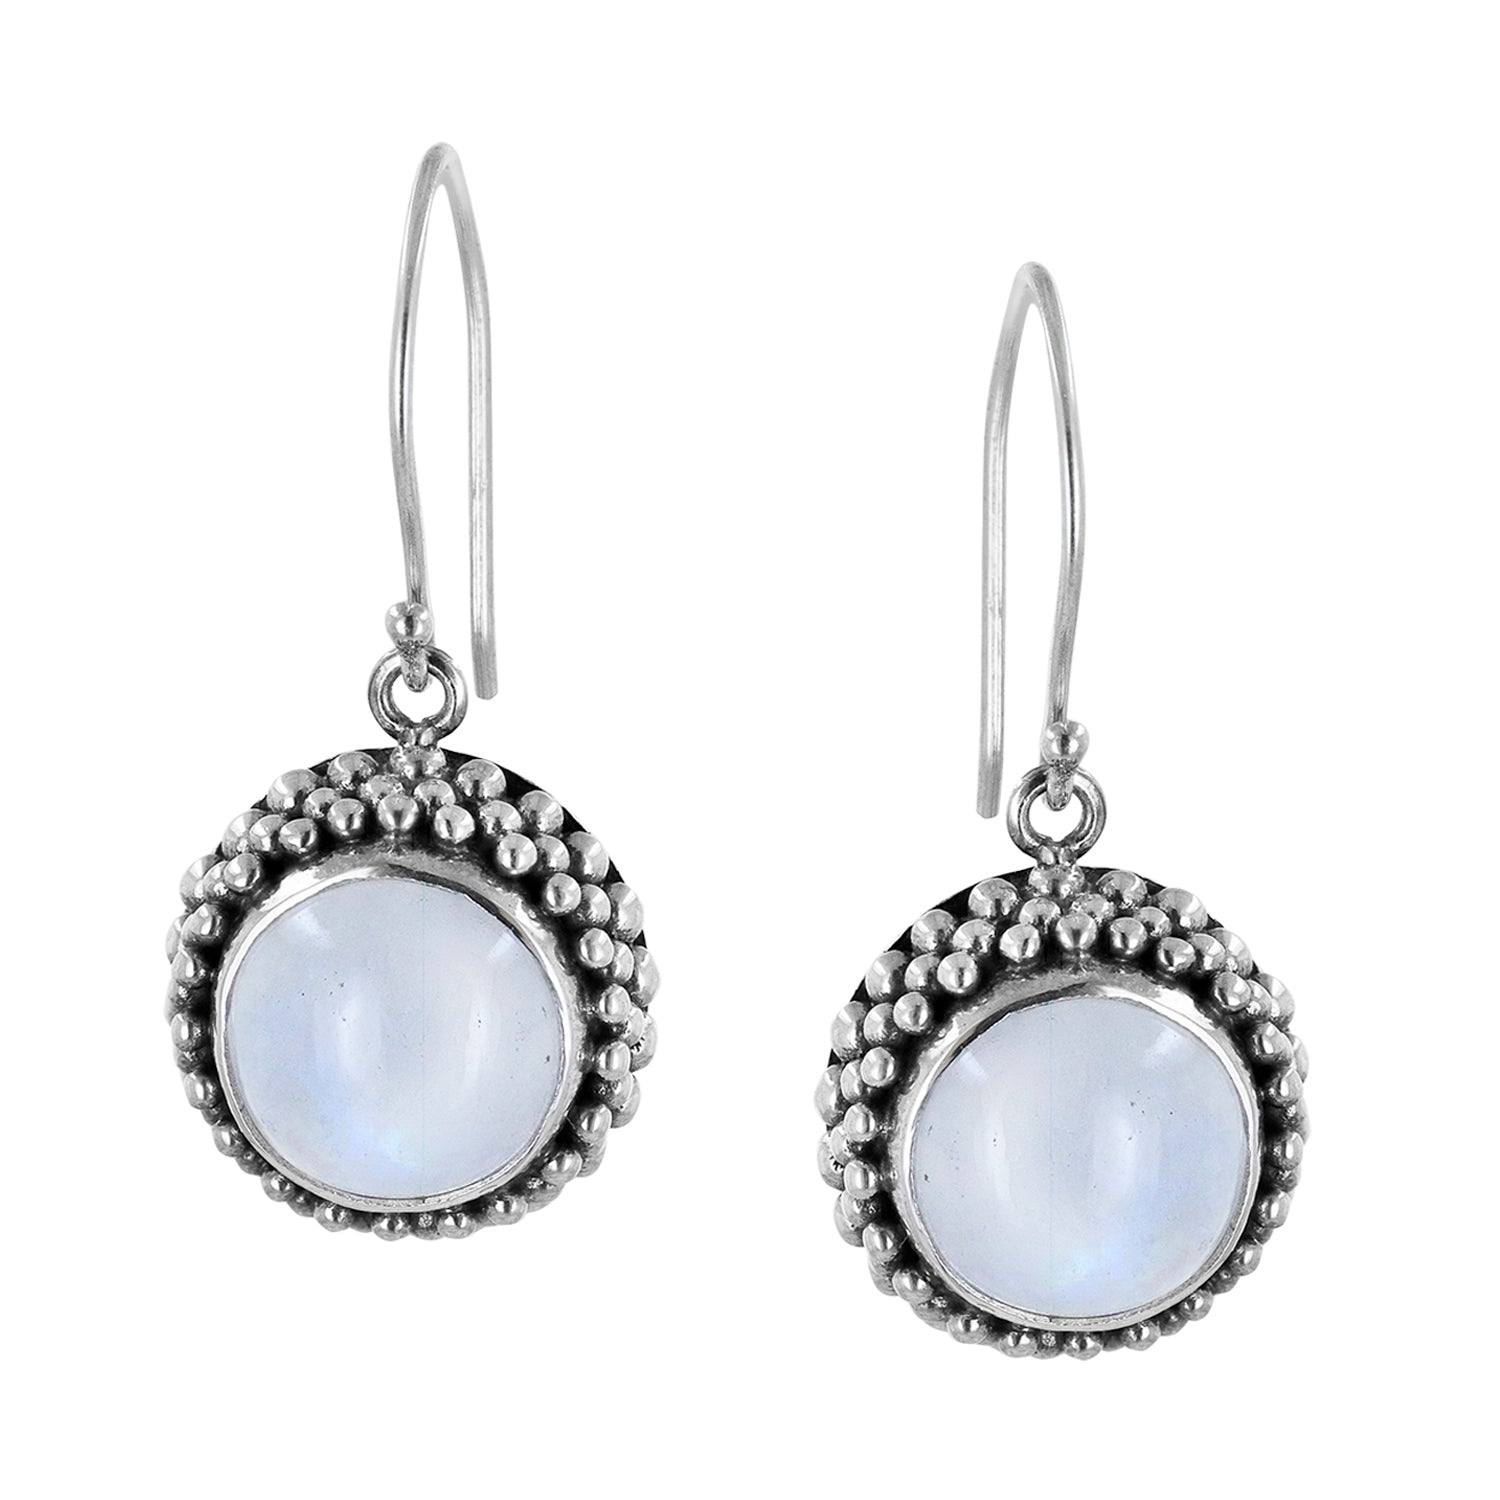 Sterling Silver Moonstone Earrings with Caviar Beads